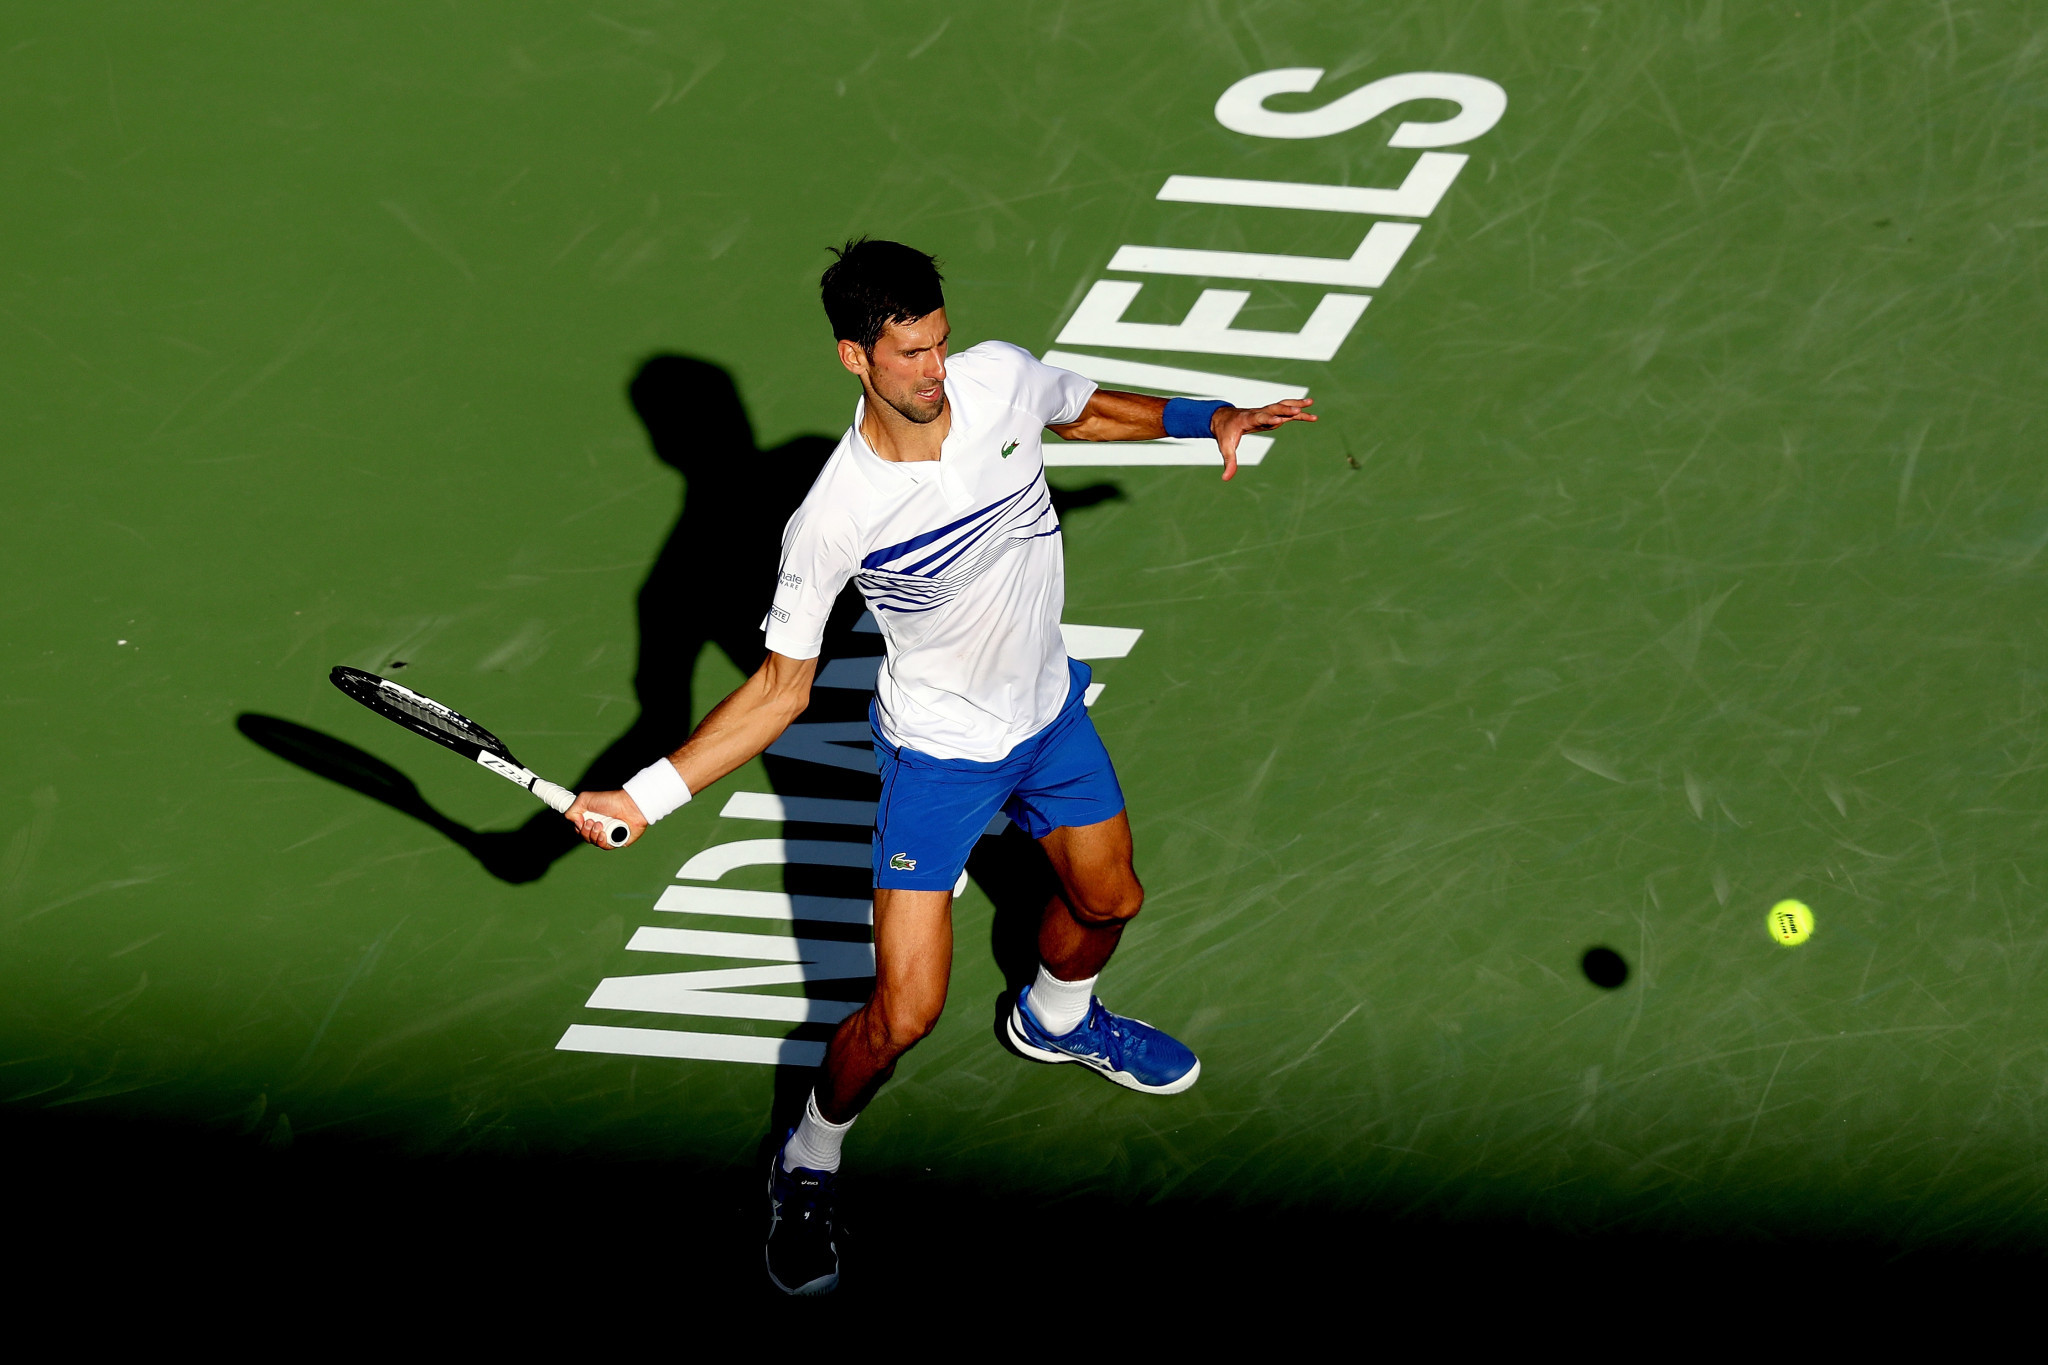 World number one Novak Djokovic made a third-round exit at the ATP tournament in Indian Wells, California ©Getty Images